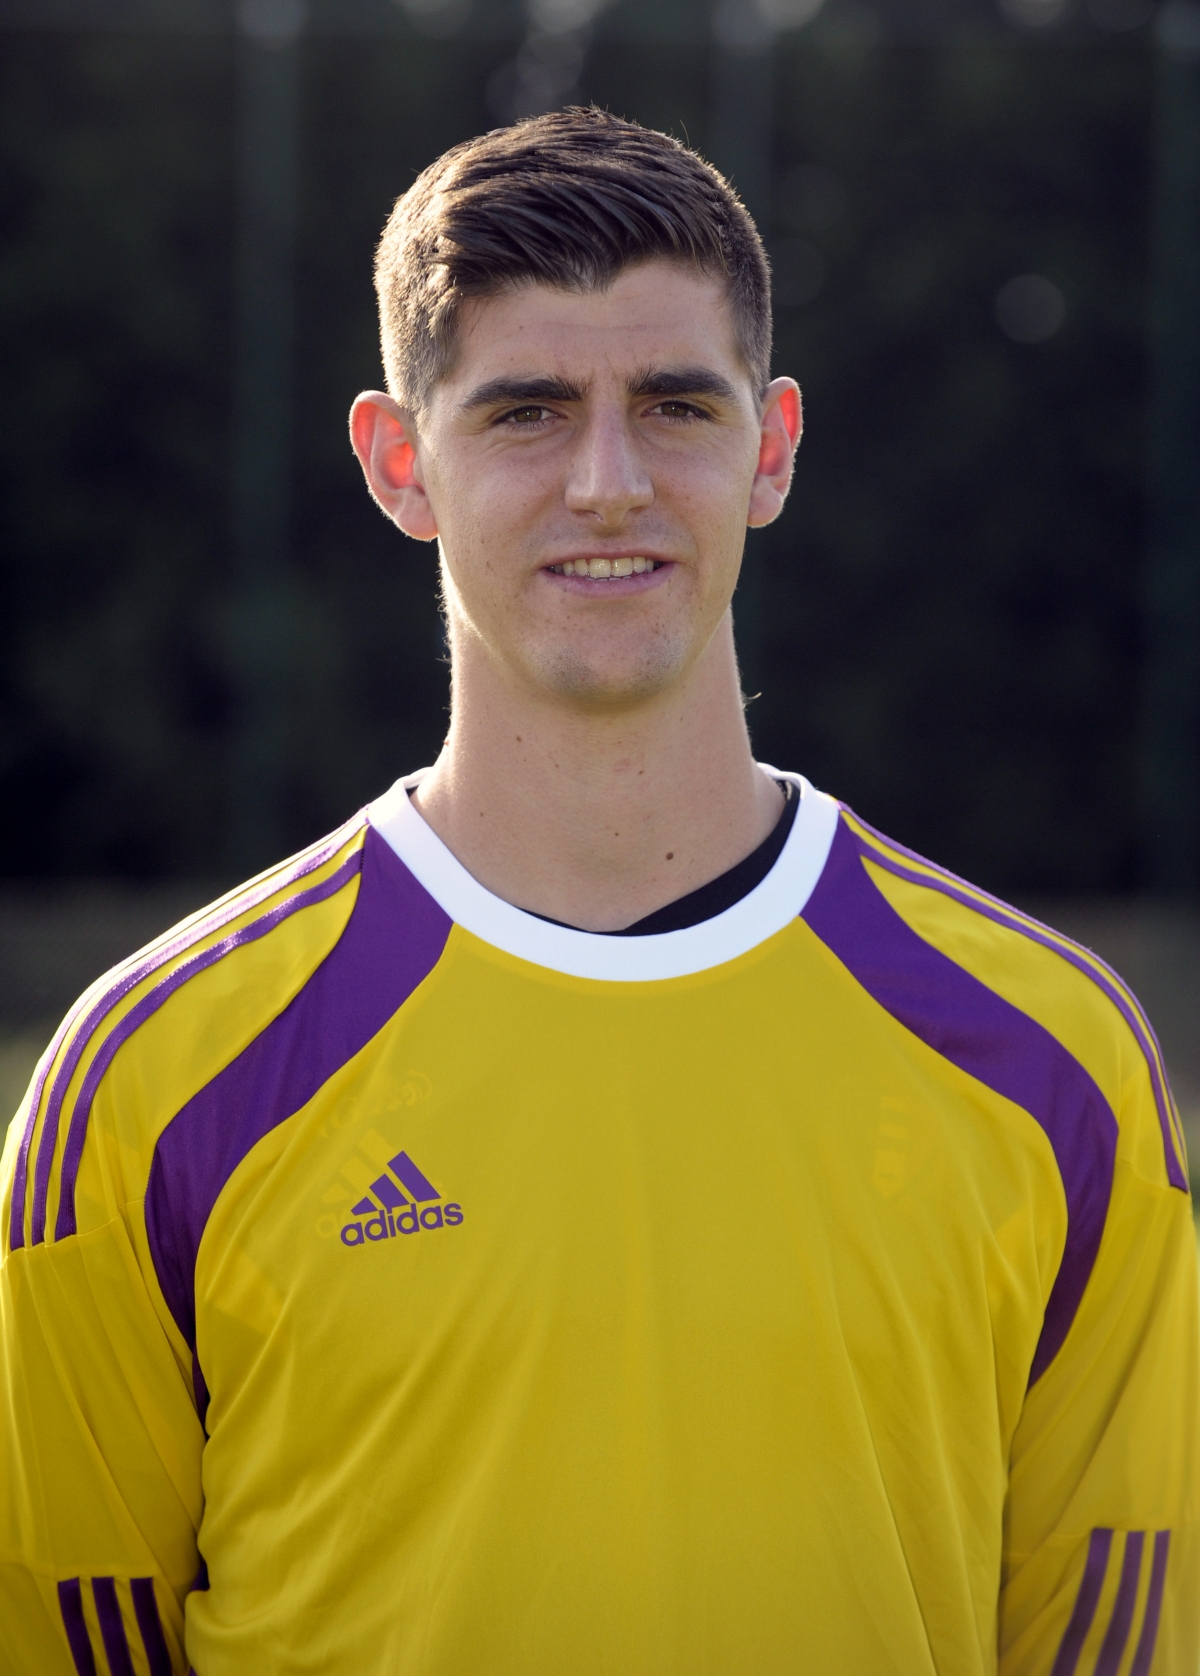 Pens Five-Year Courtois New at Chelsea Thibaut Deal